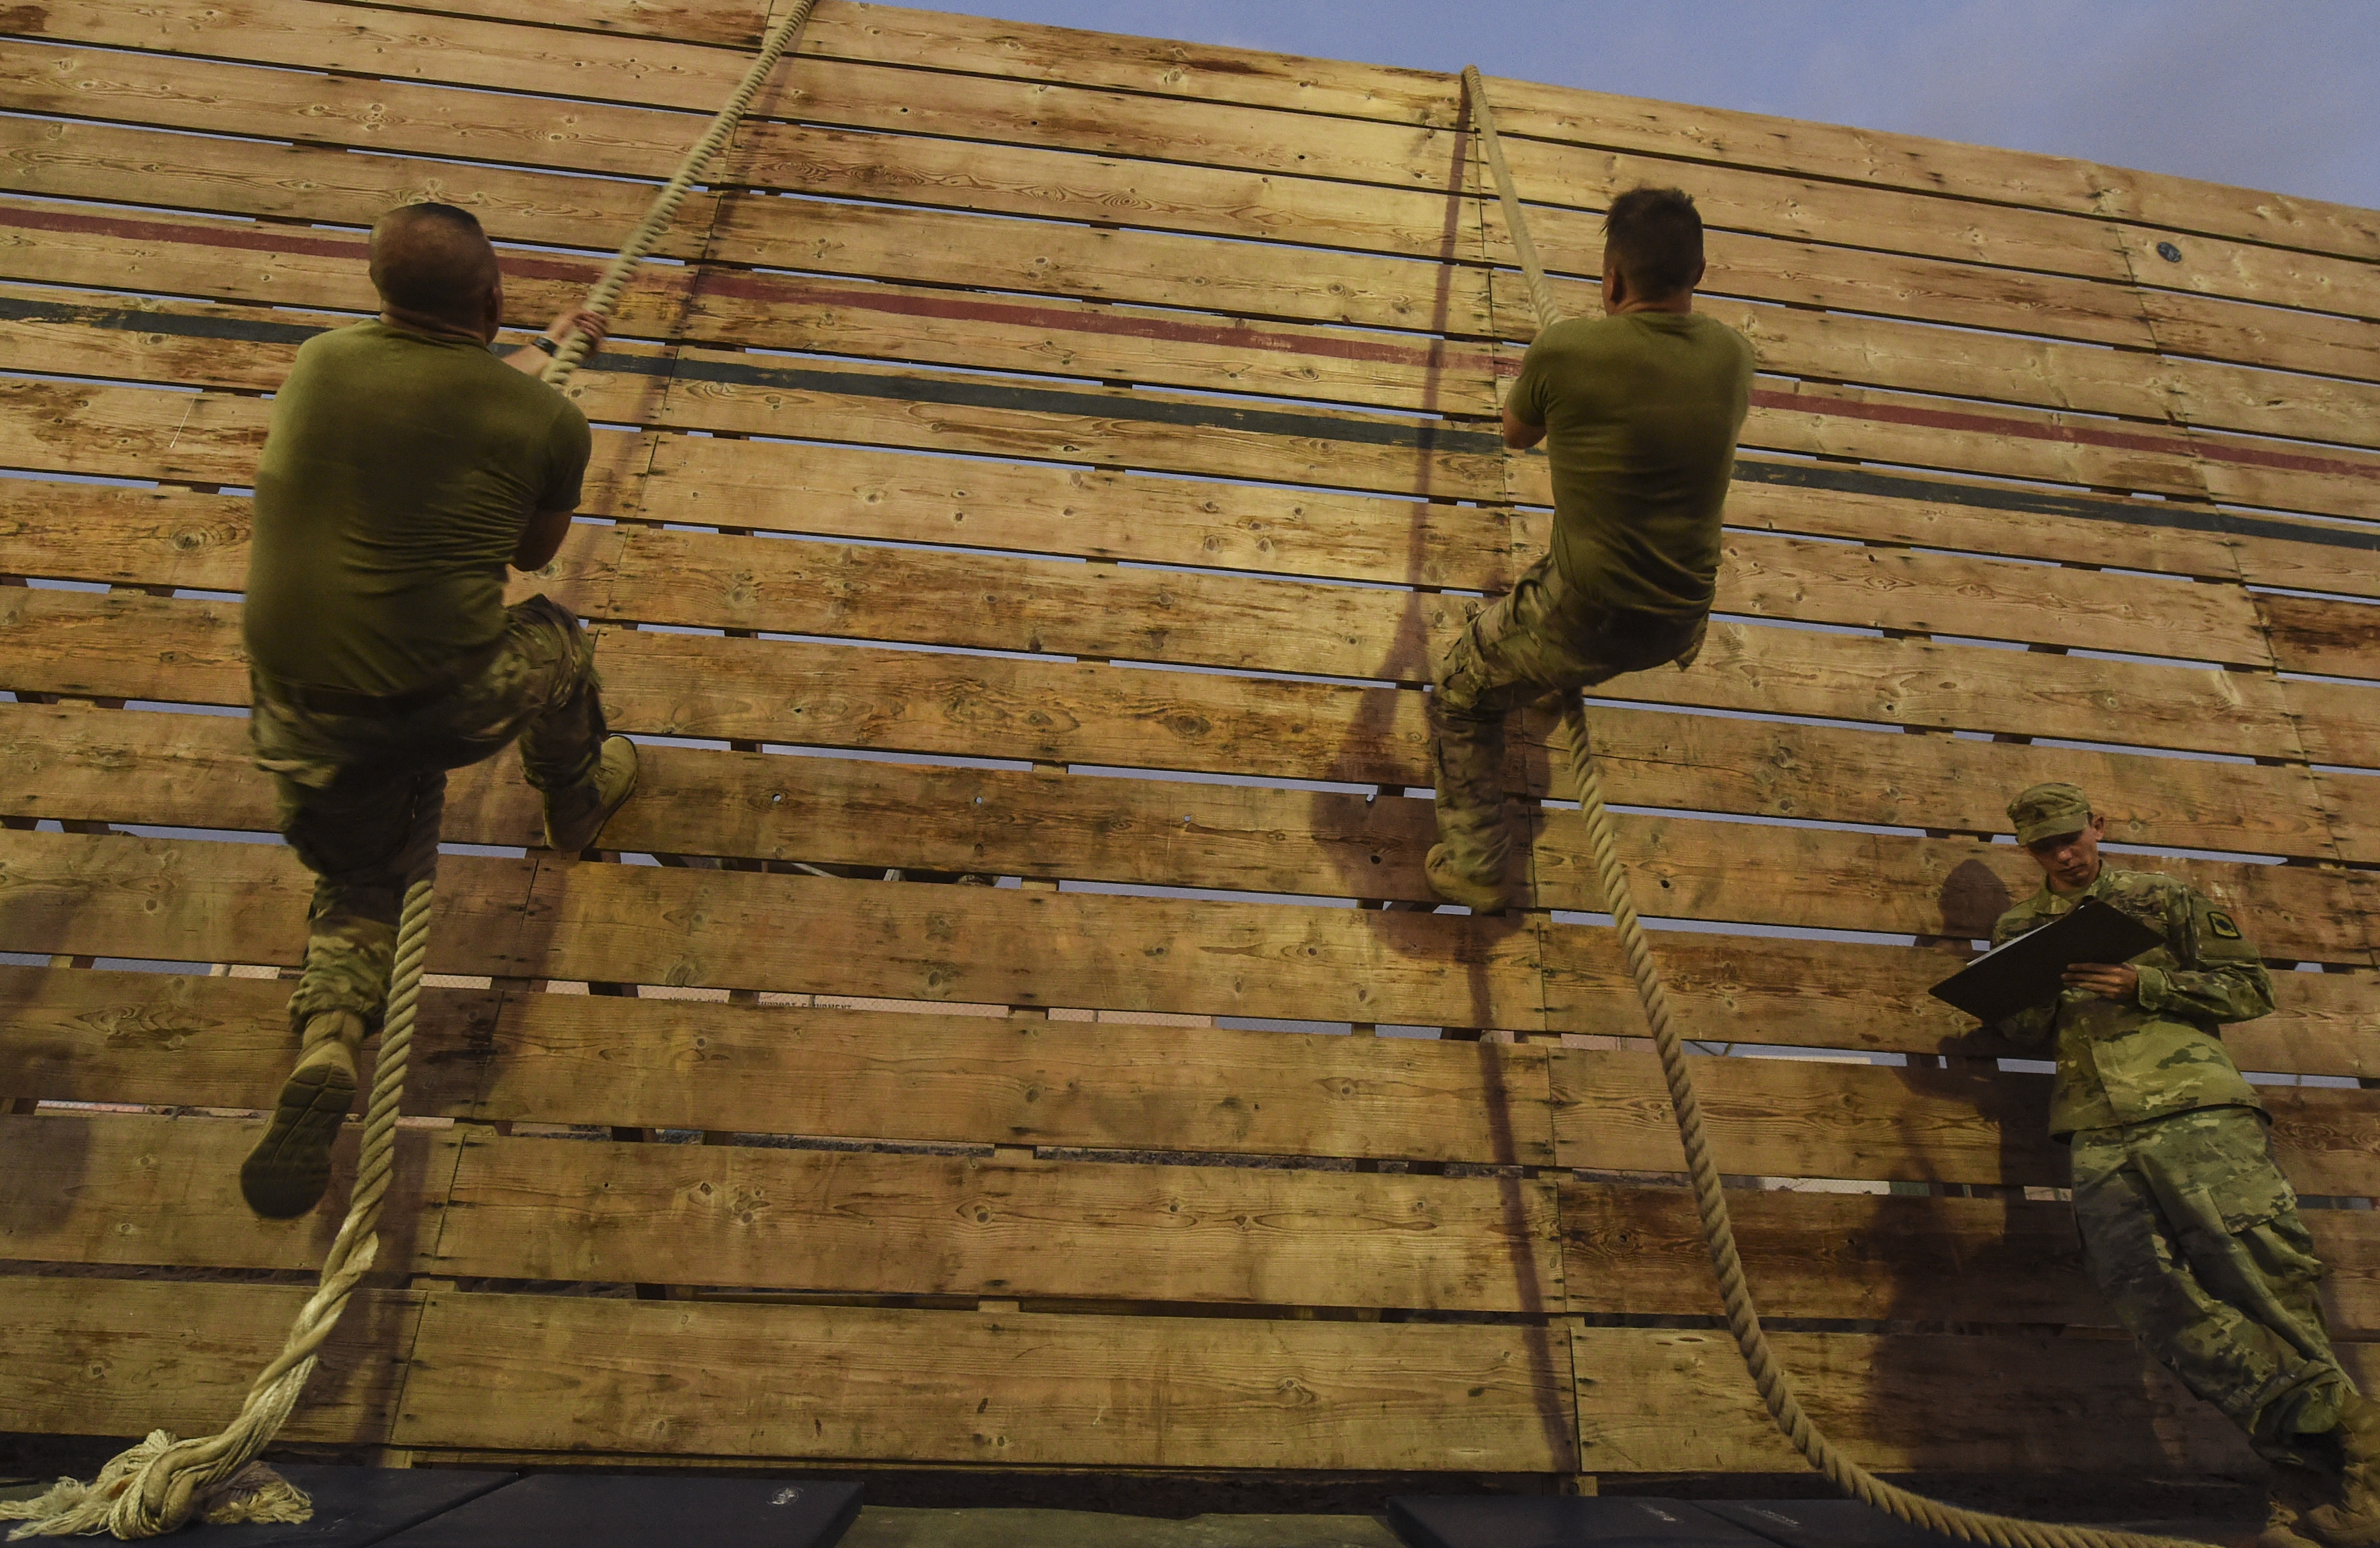 U.S. military members complete a wall rope climb during a physical training test at Camp Lemonnier, Djibouti, Aug. 5, 2017. The test was in preparation for an upcoming multi-day French Desert Commando Course that will challenge participants physically and mentally through land and water obstacles, combat scenarios and extreme endurance exercises while surviving in austere field conditions. (U.S. Air Force photo by Staff Sgt. Eboni Prince)